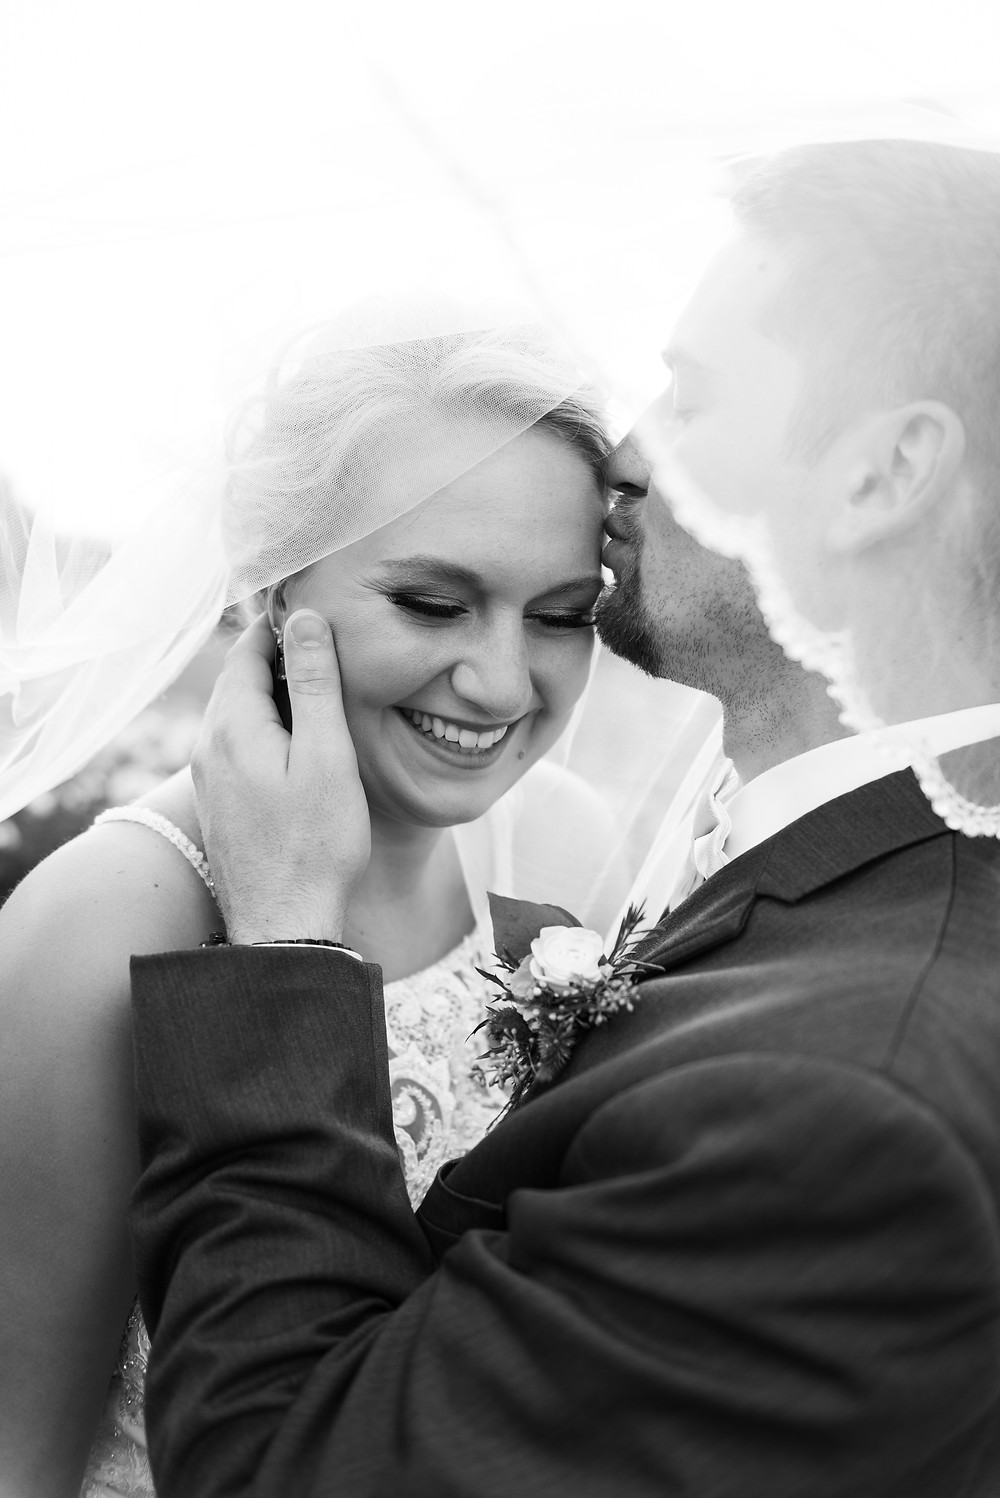 Black and white portrait of the bride and groom under the veil